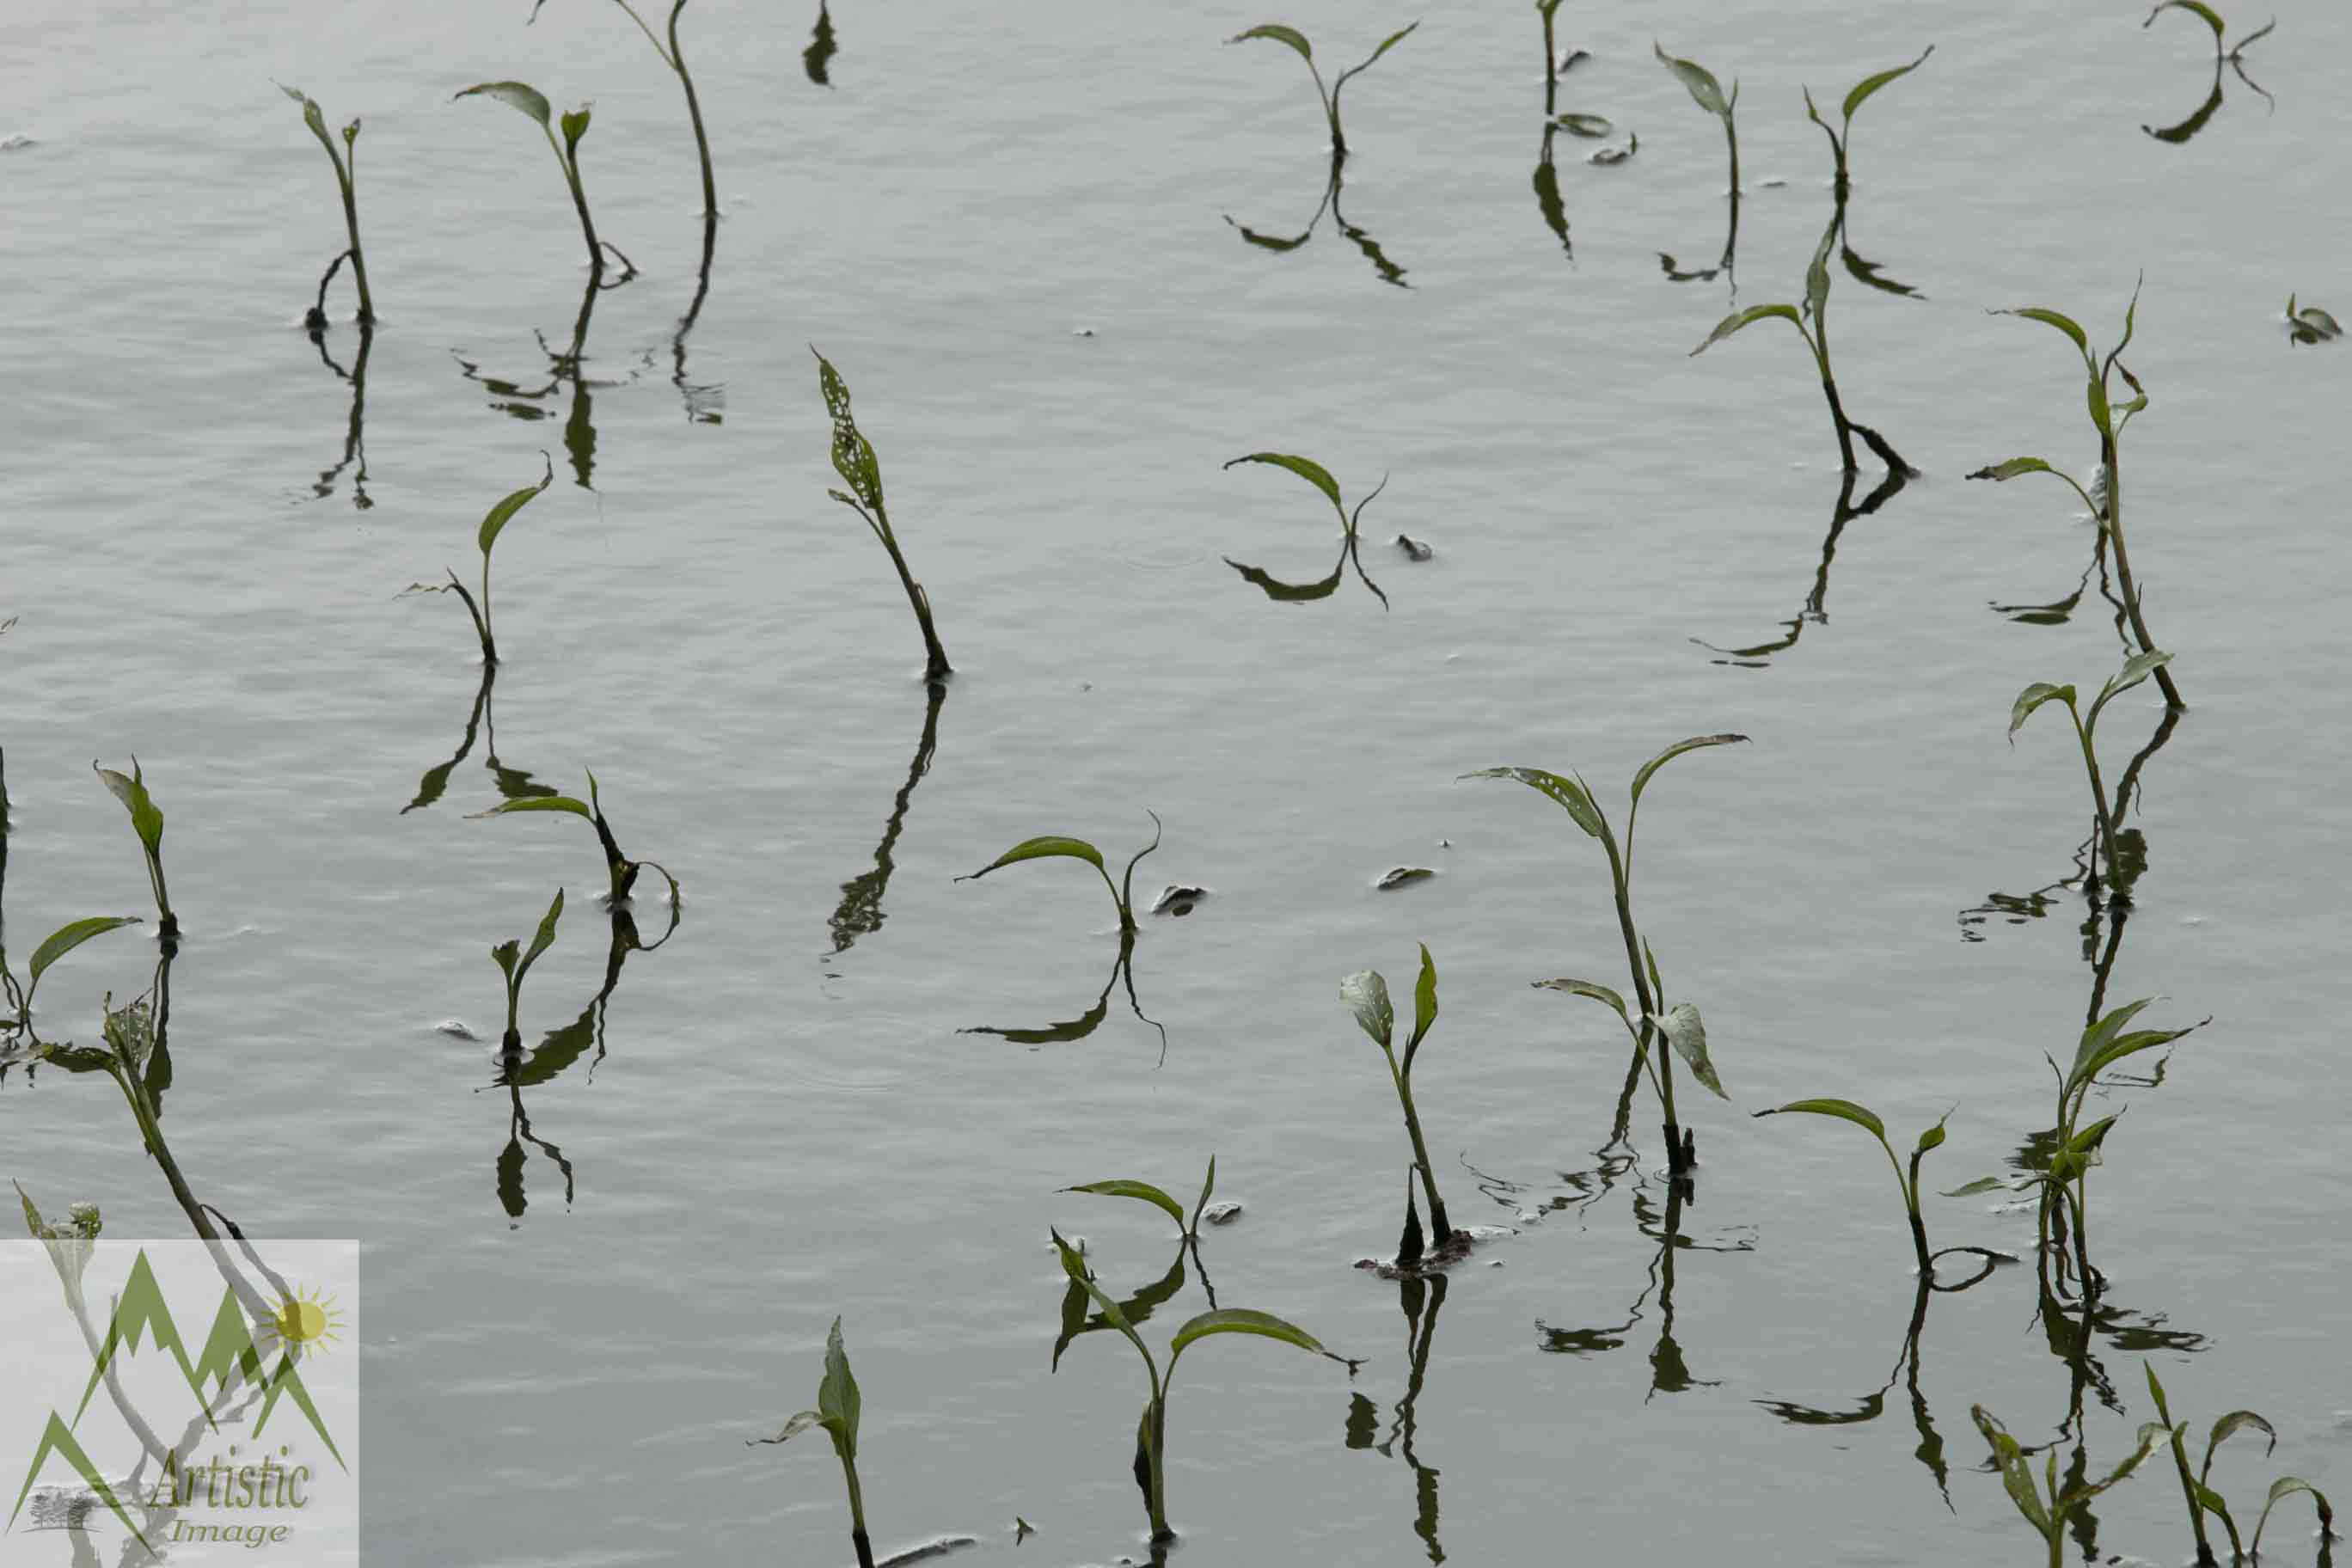 Plants in Water